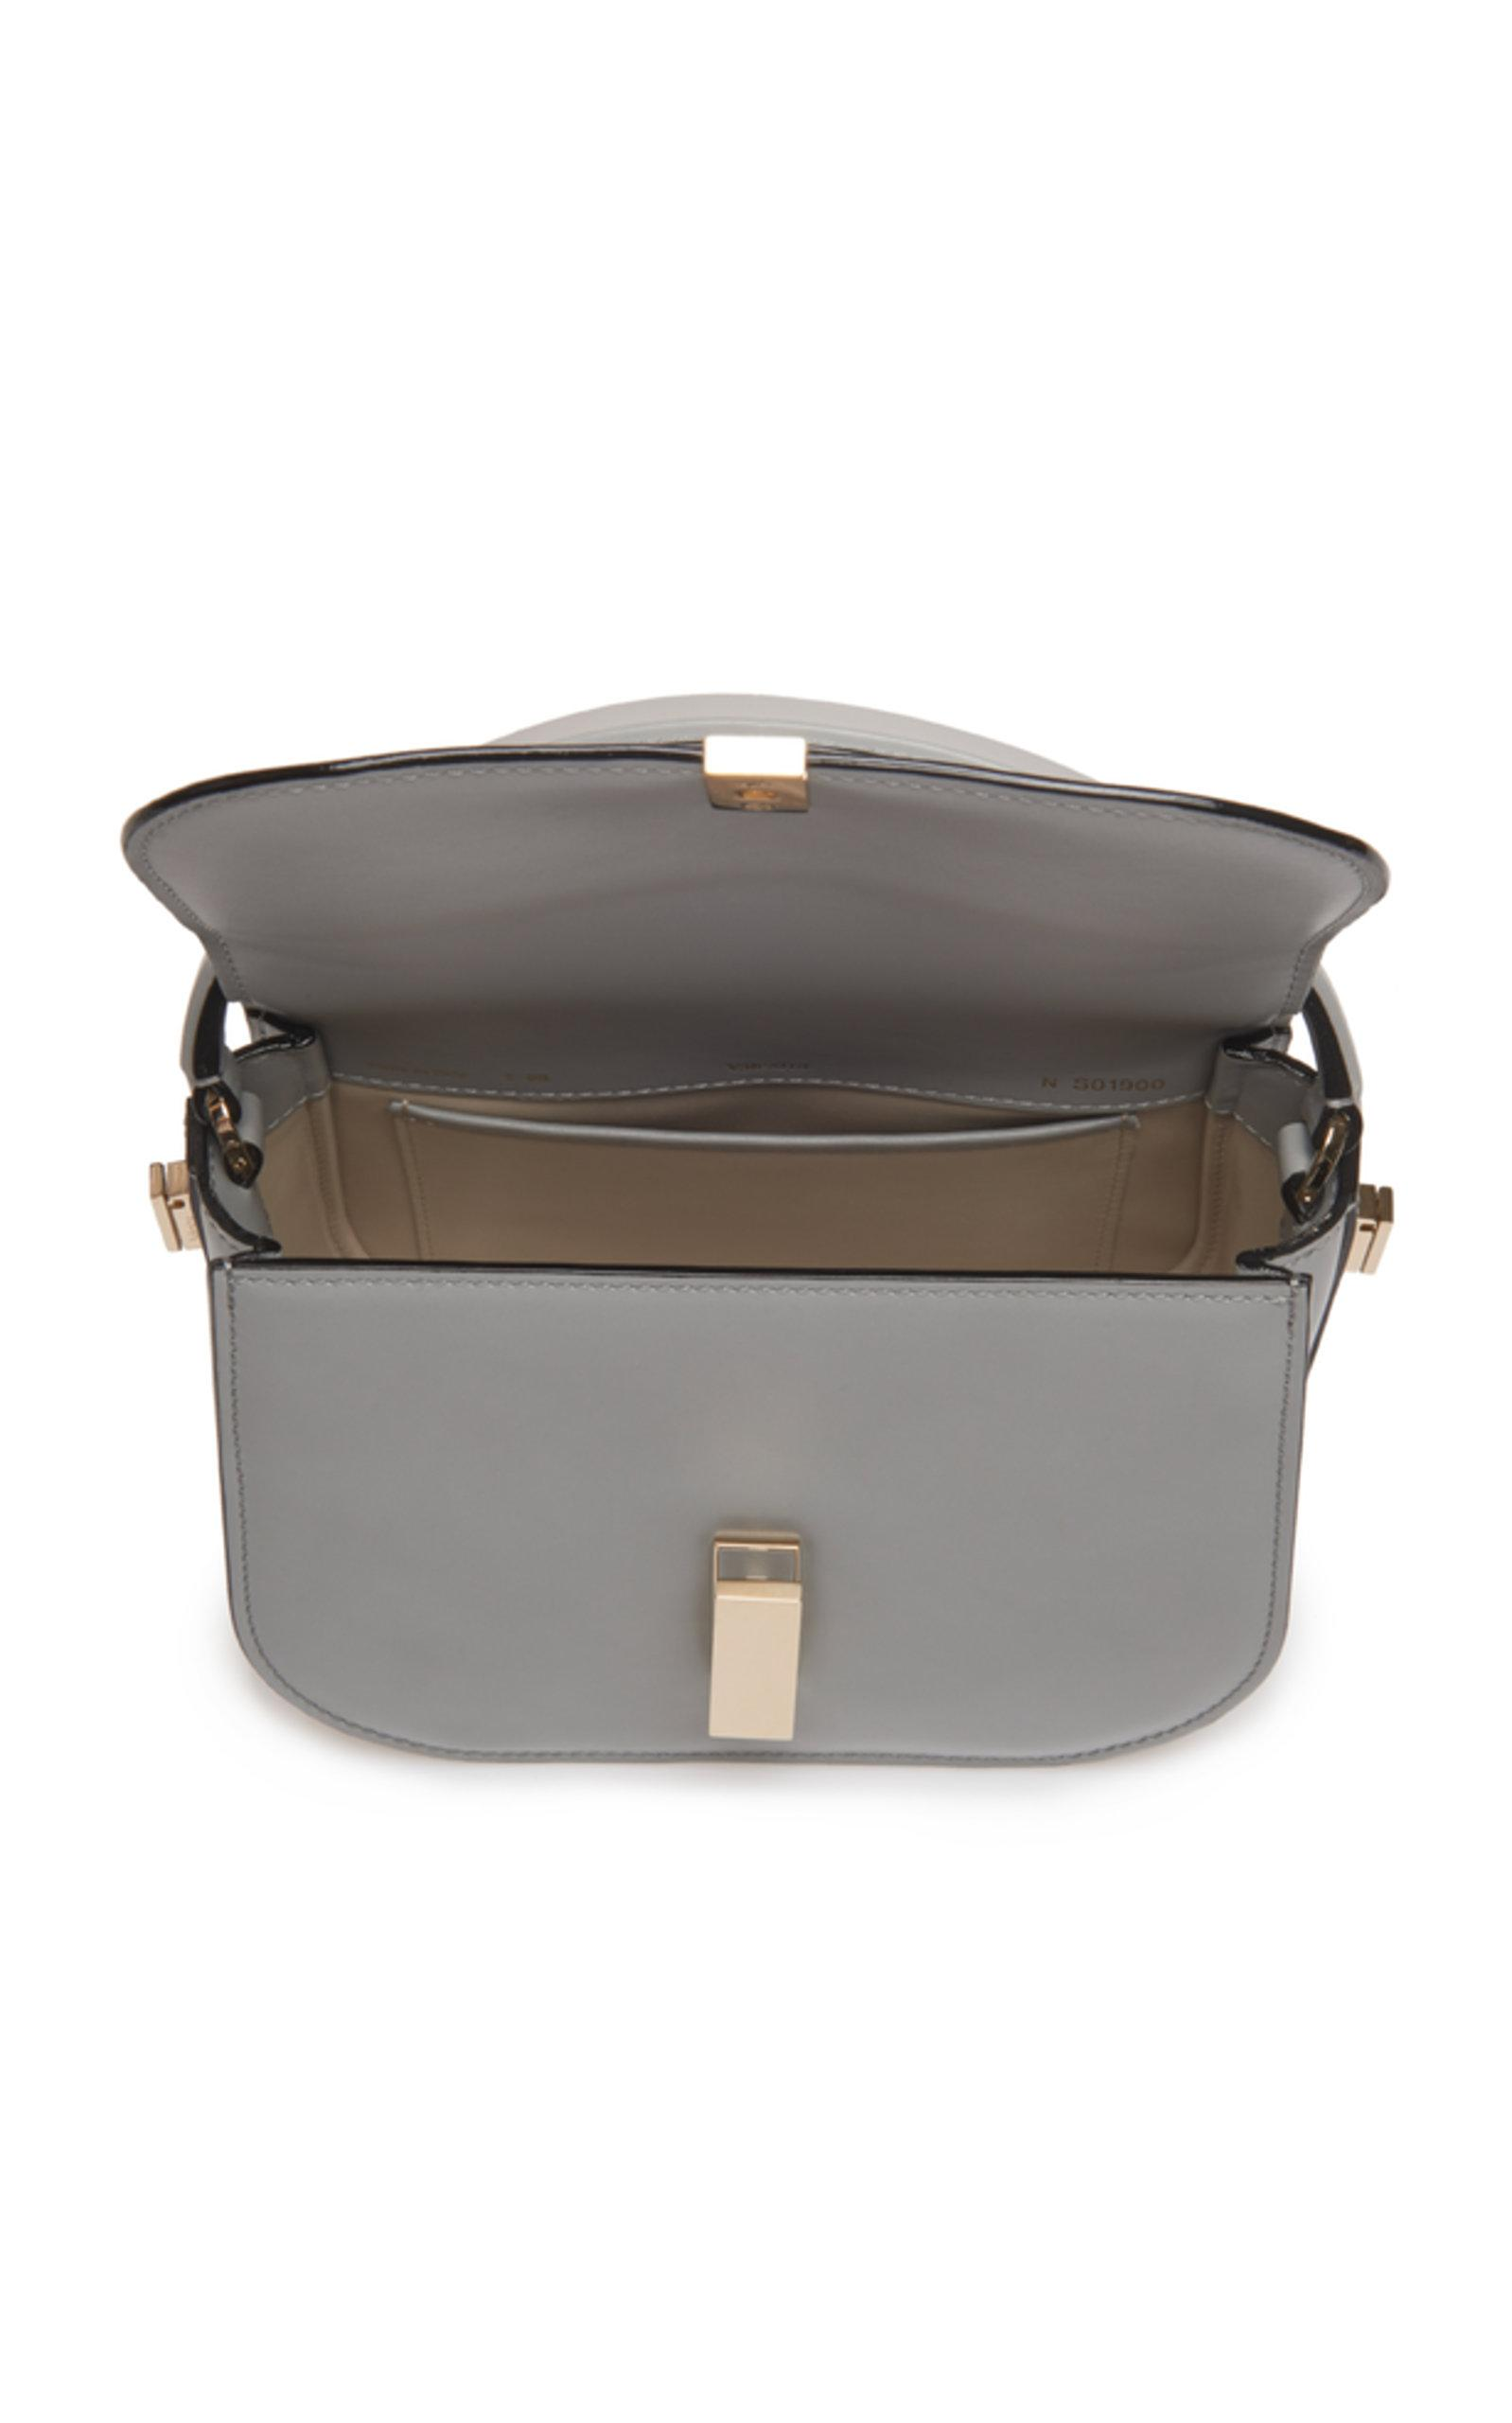 Valextra Iside Mini Leather Top Handle Bag in Grey (Grey)